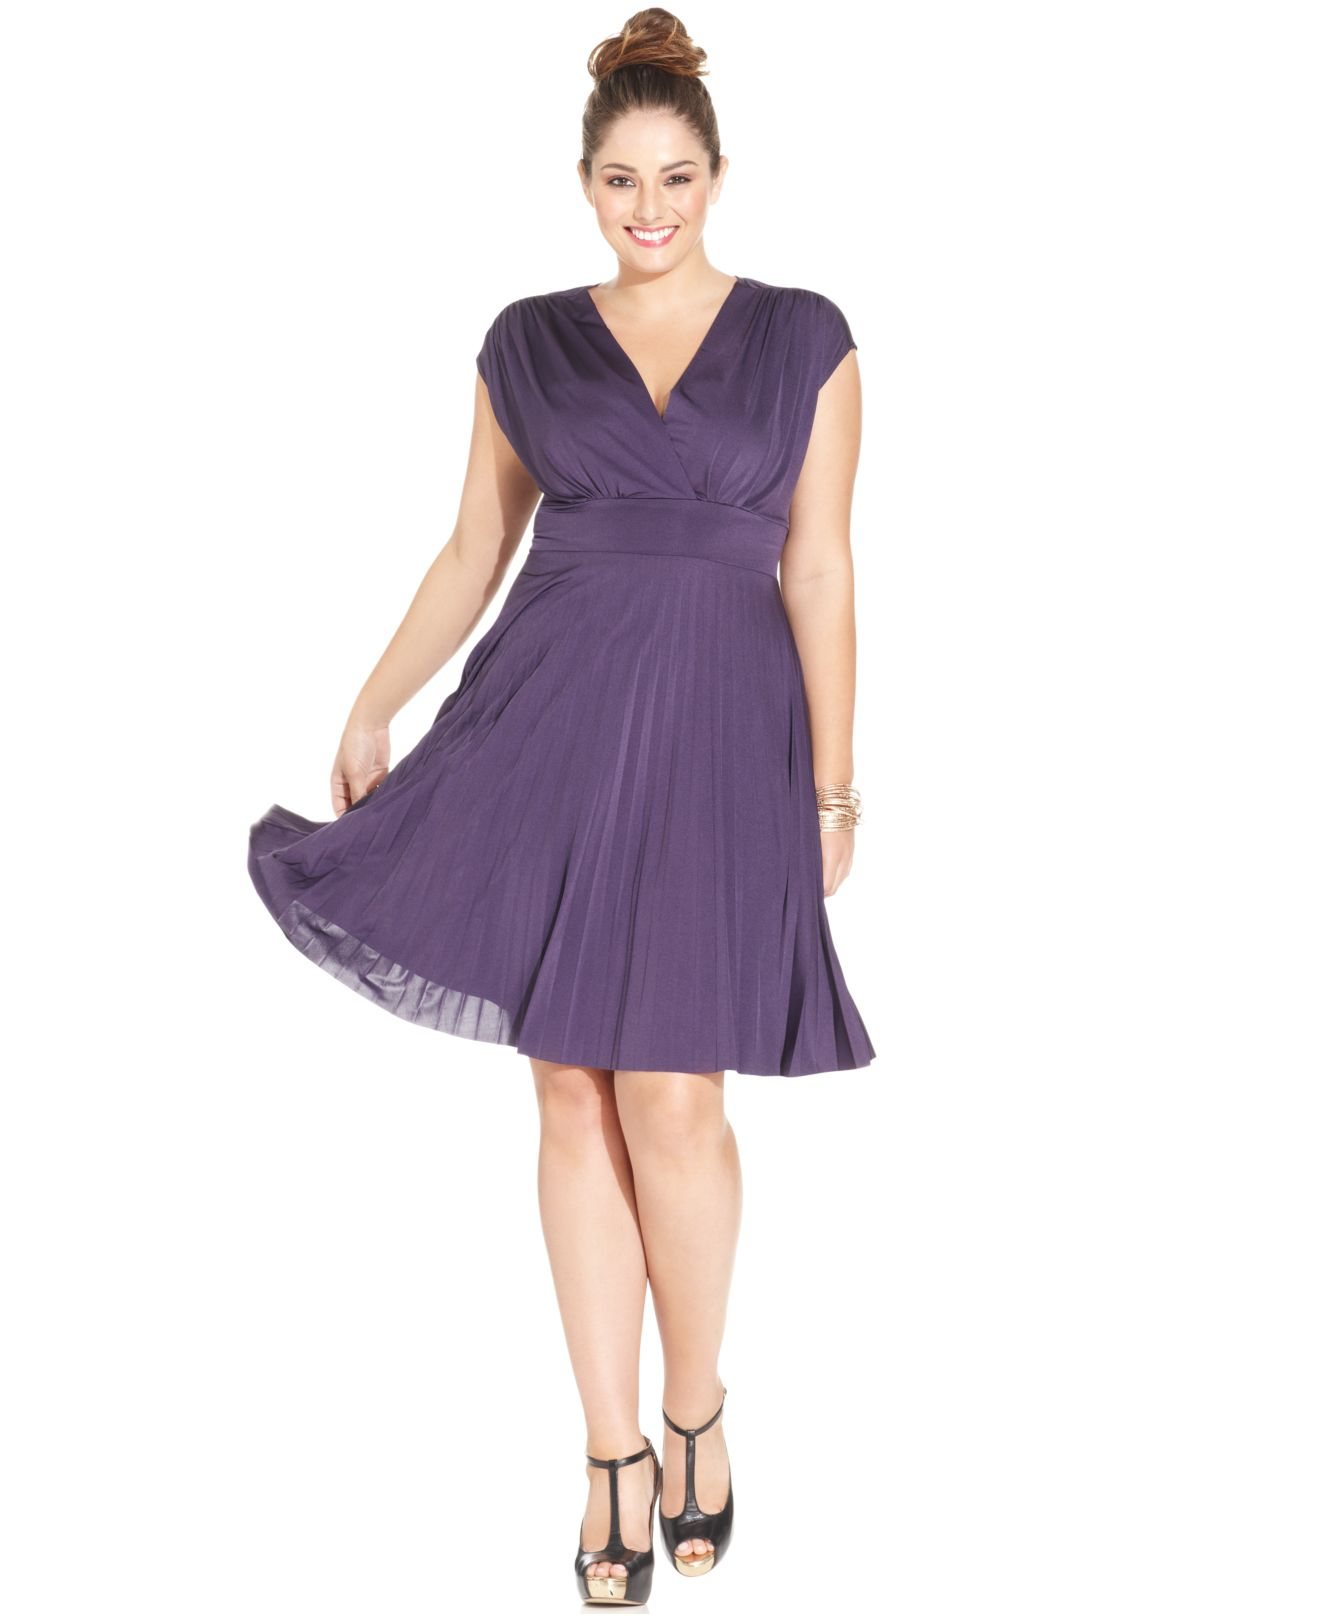 8a0dfc14f4902a Lyst - Soprano Plus Size Cap-Sleeve Pleated Empire Dress in Purple